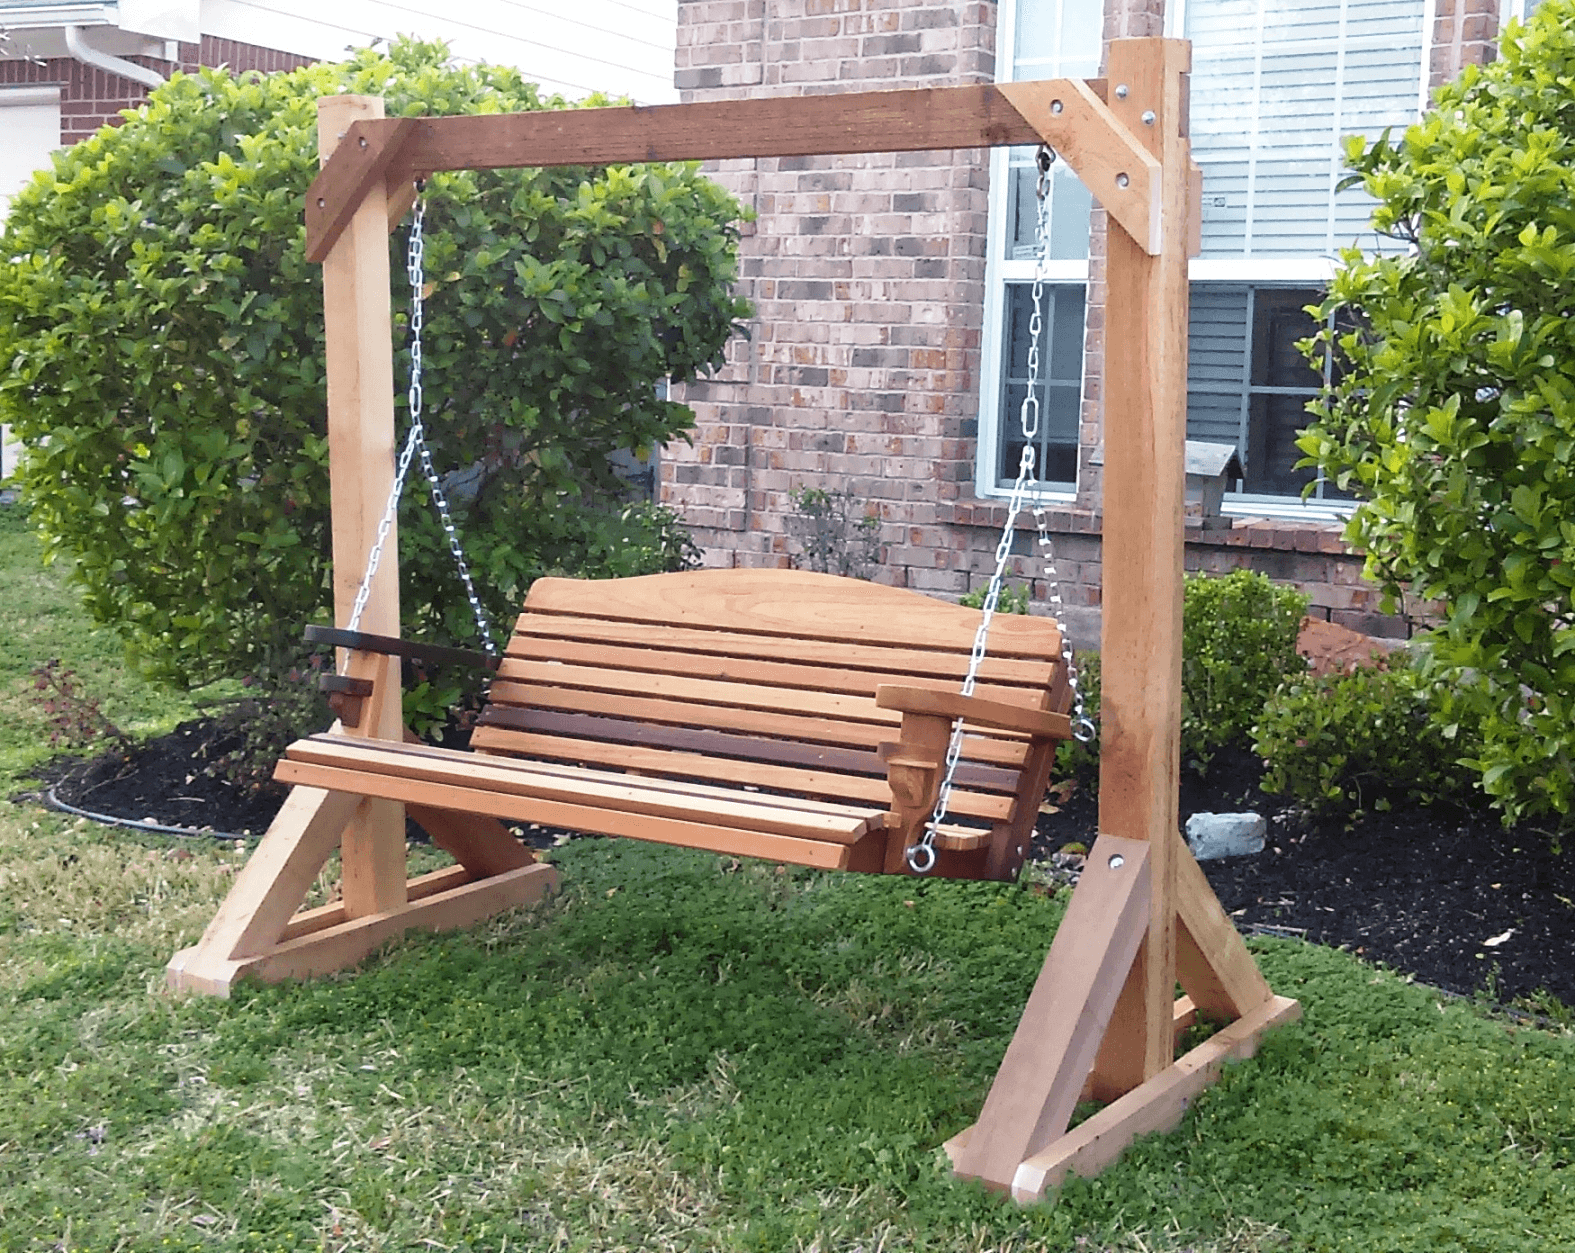 Simple Tips To Build Diy Wood Porch Swing Frame Plans. Wood Joy Patio Furniture. Vintage Patio Furniture San Diego. Outdoor Furniture Fabric Wholesale. 3 Seat Patio Swing Cushions. Patio Chair Cushions Forest Green. Outdoor Furniture Clearance Sales Uk. Patio Furniture Paint Repair. Lowes Patio Furniture Brands